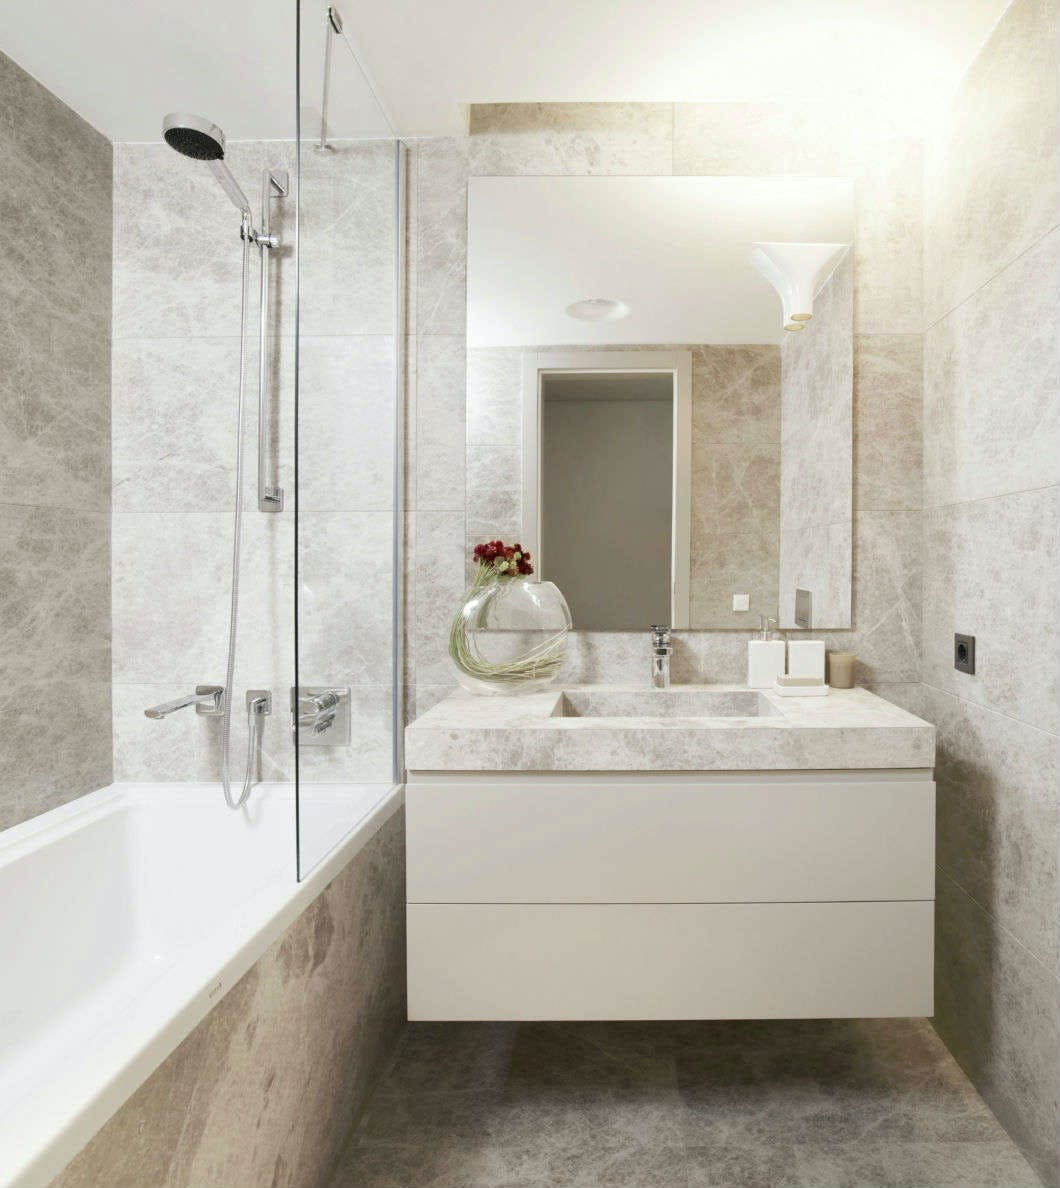 Sometimes less is more and when it comes to creating a modern bathroom minimalism is key.